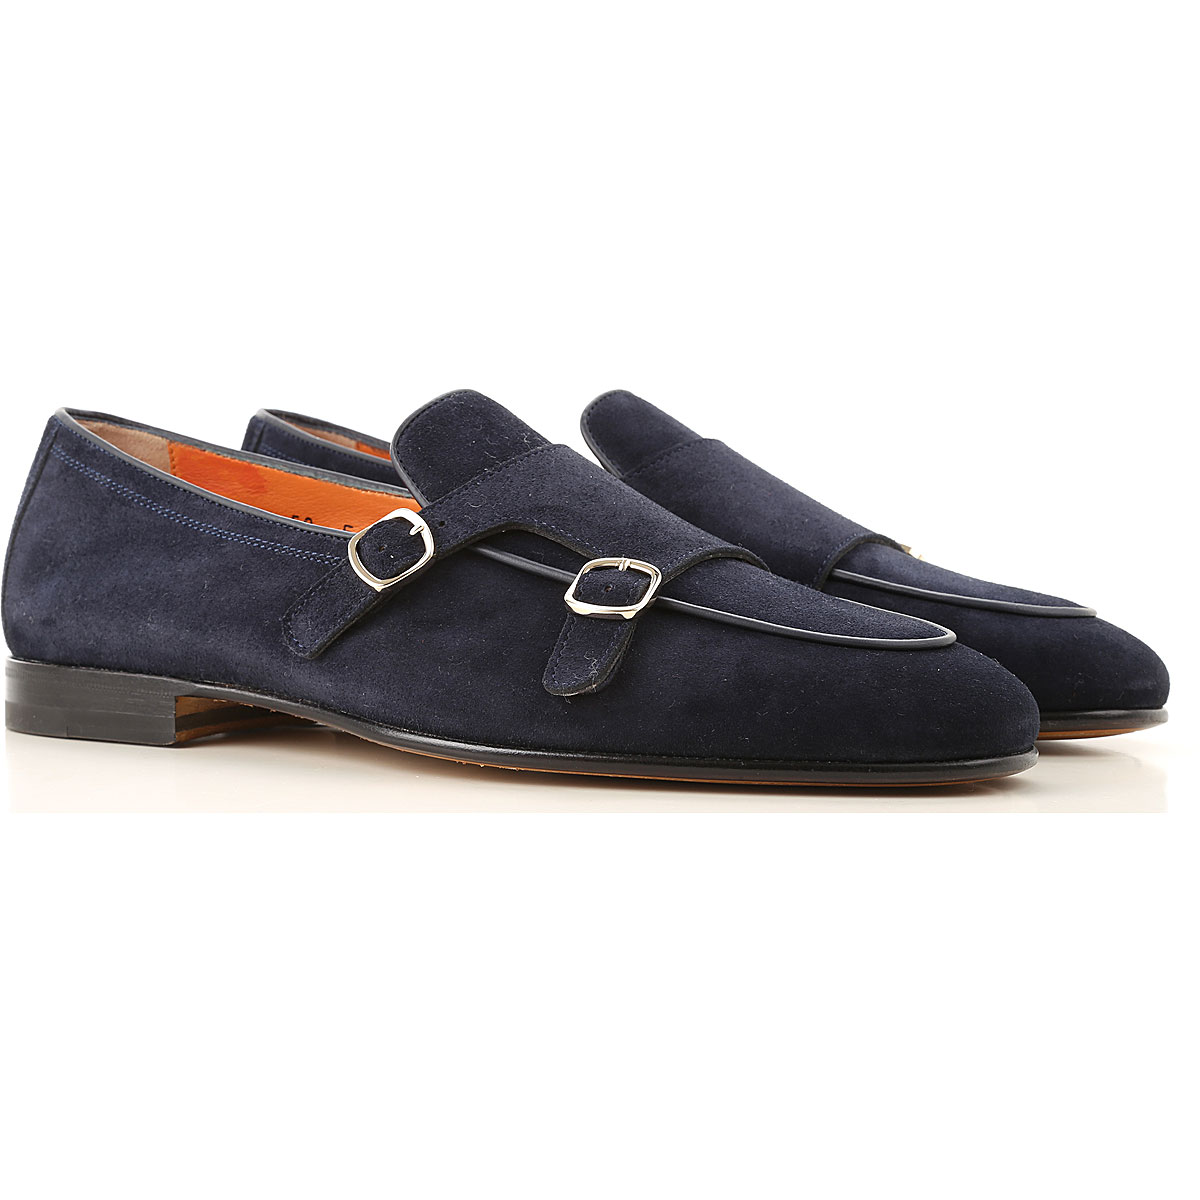 Santoni Loafers for Men, Dark Midnight Blue, suede, 2019, 11 12 8.5